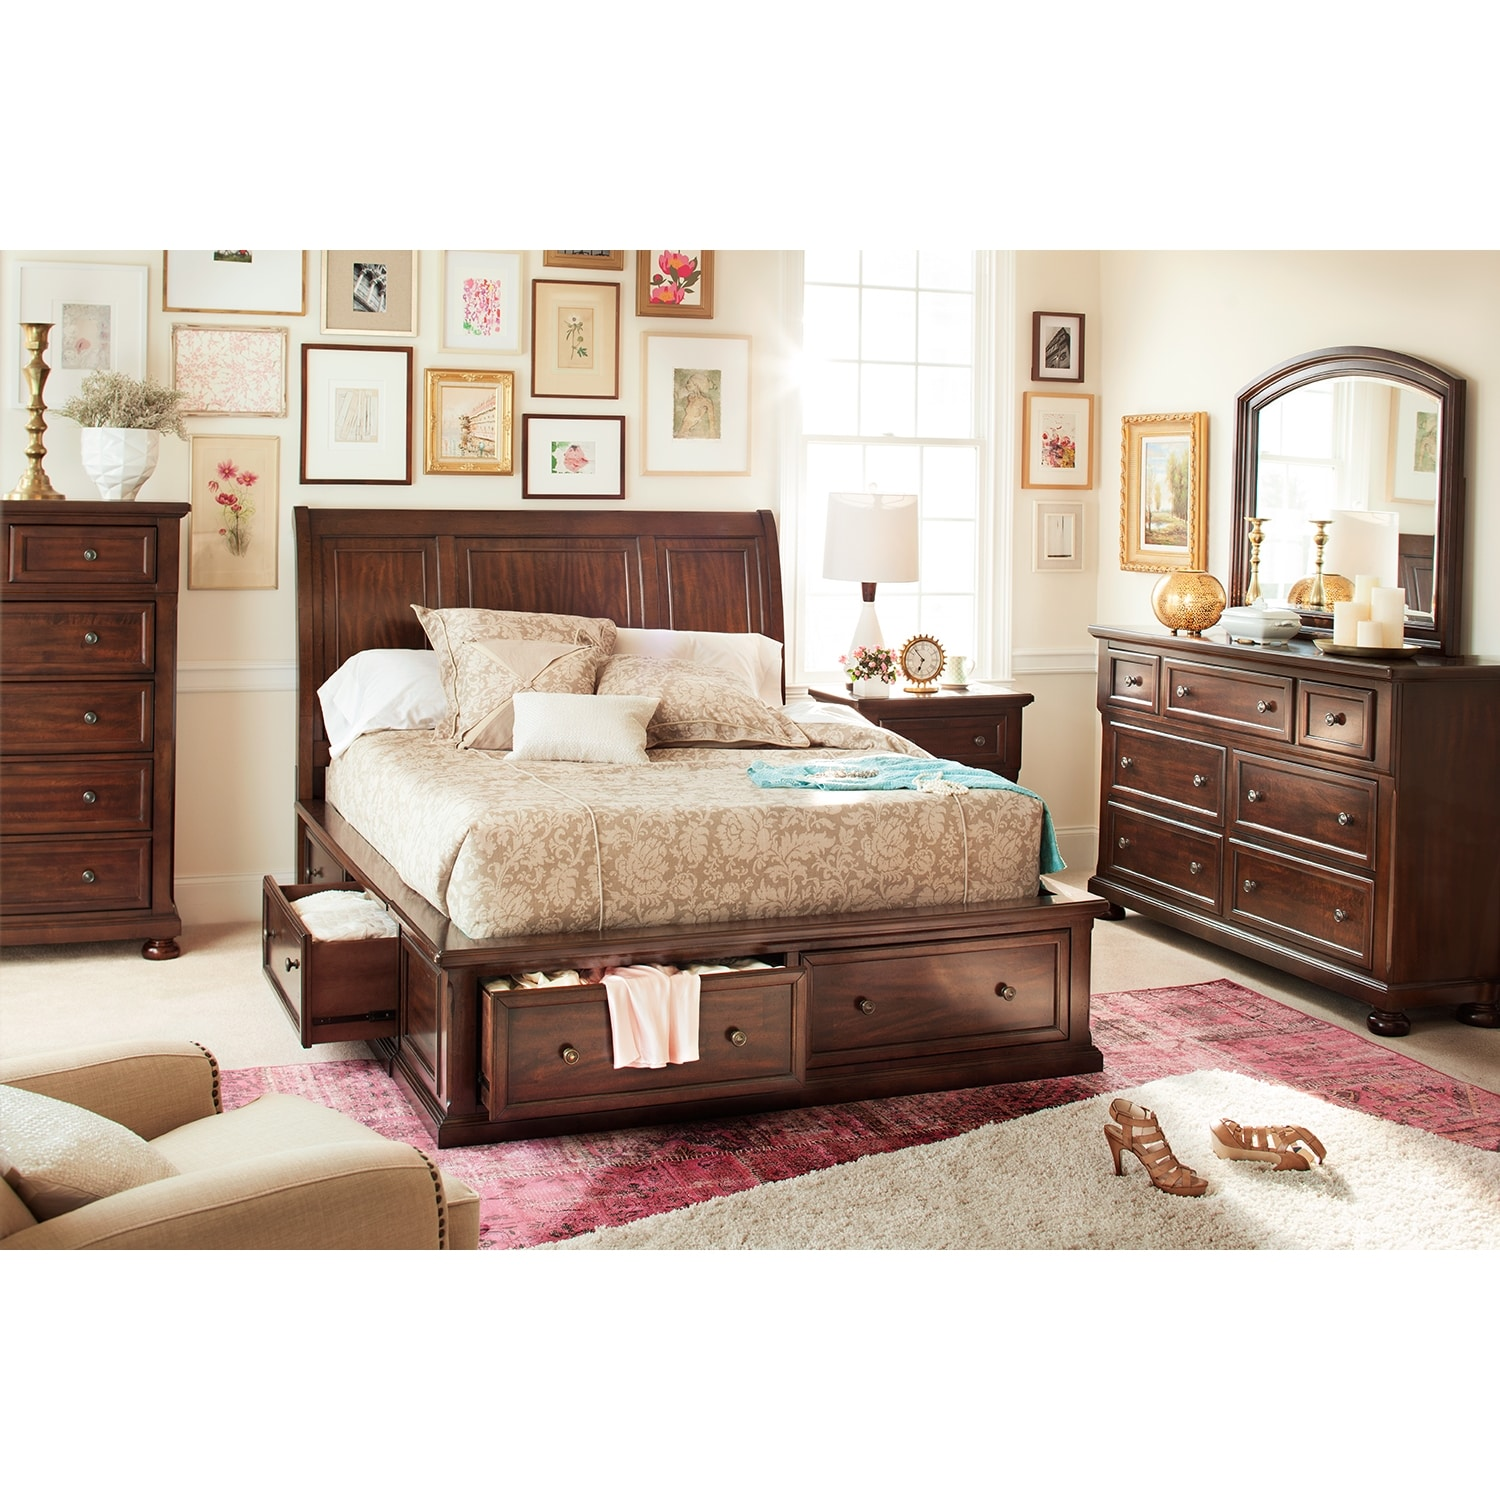 American Signature Furniture Com